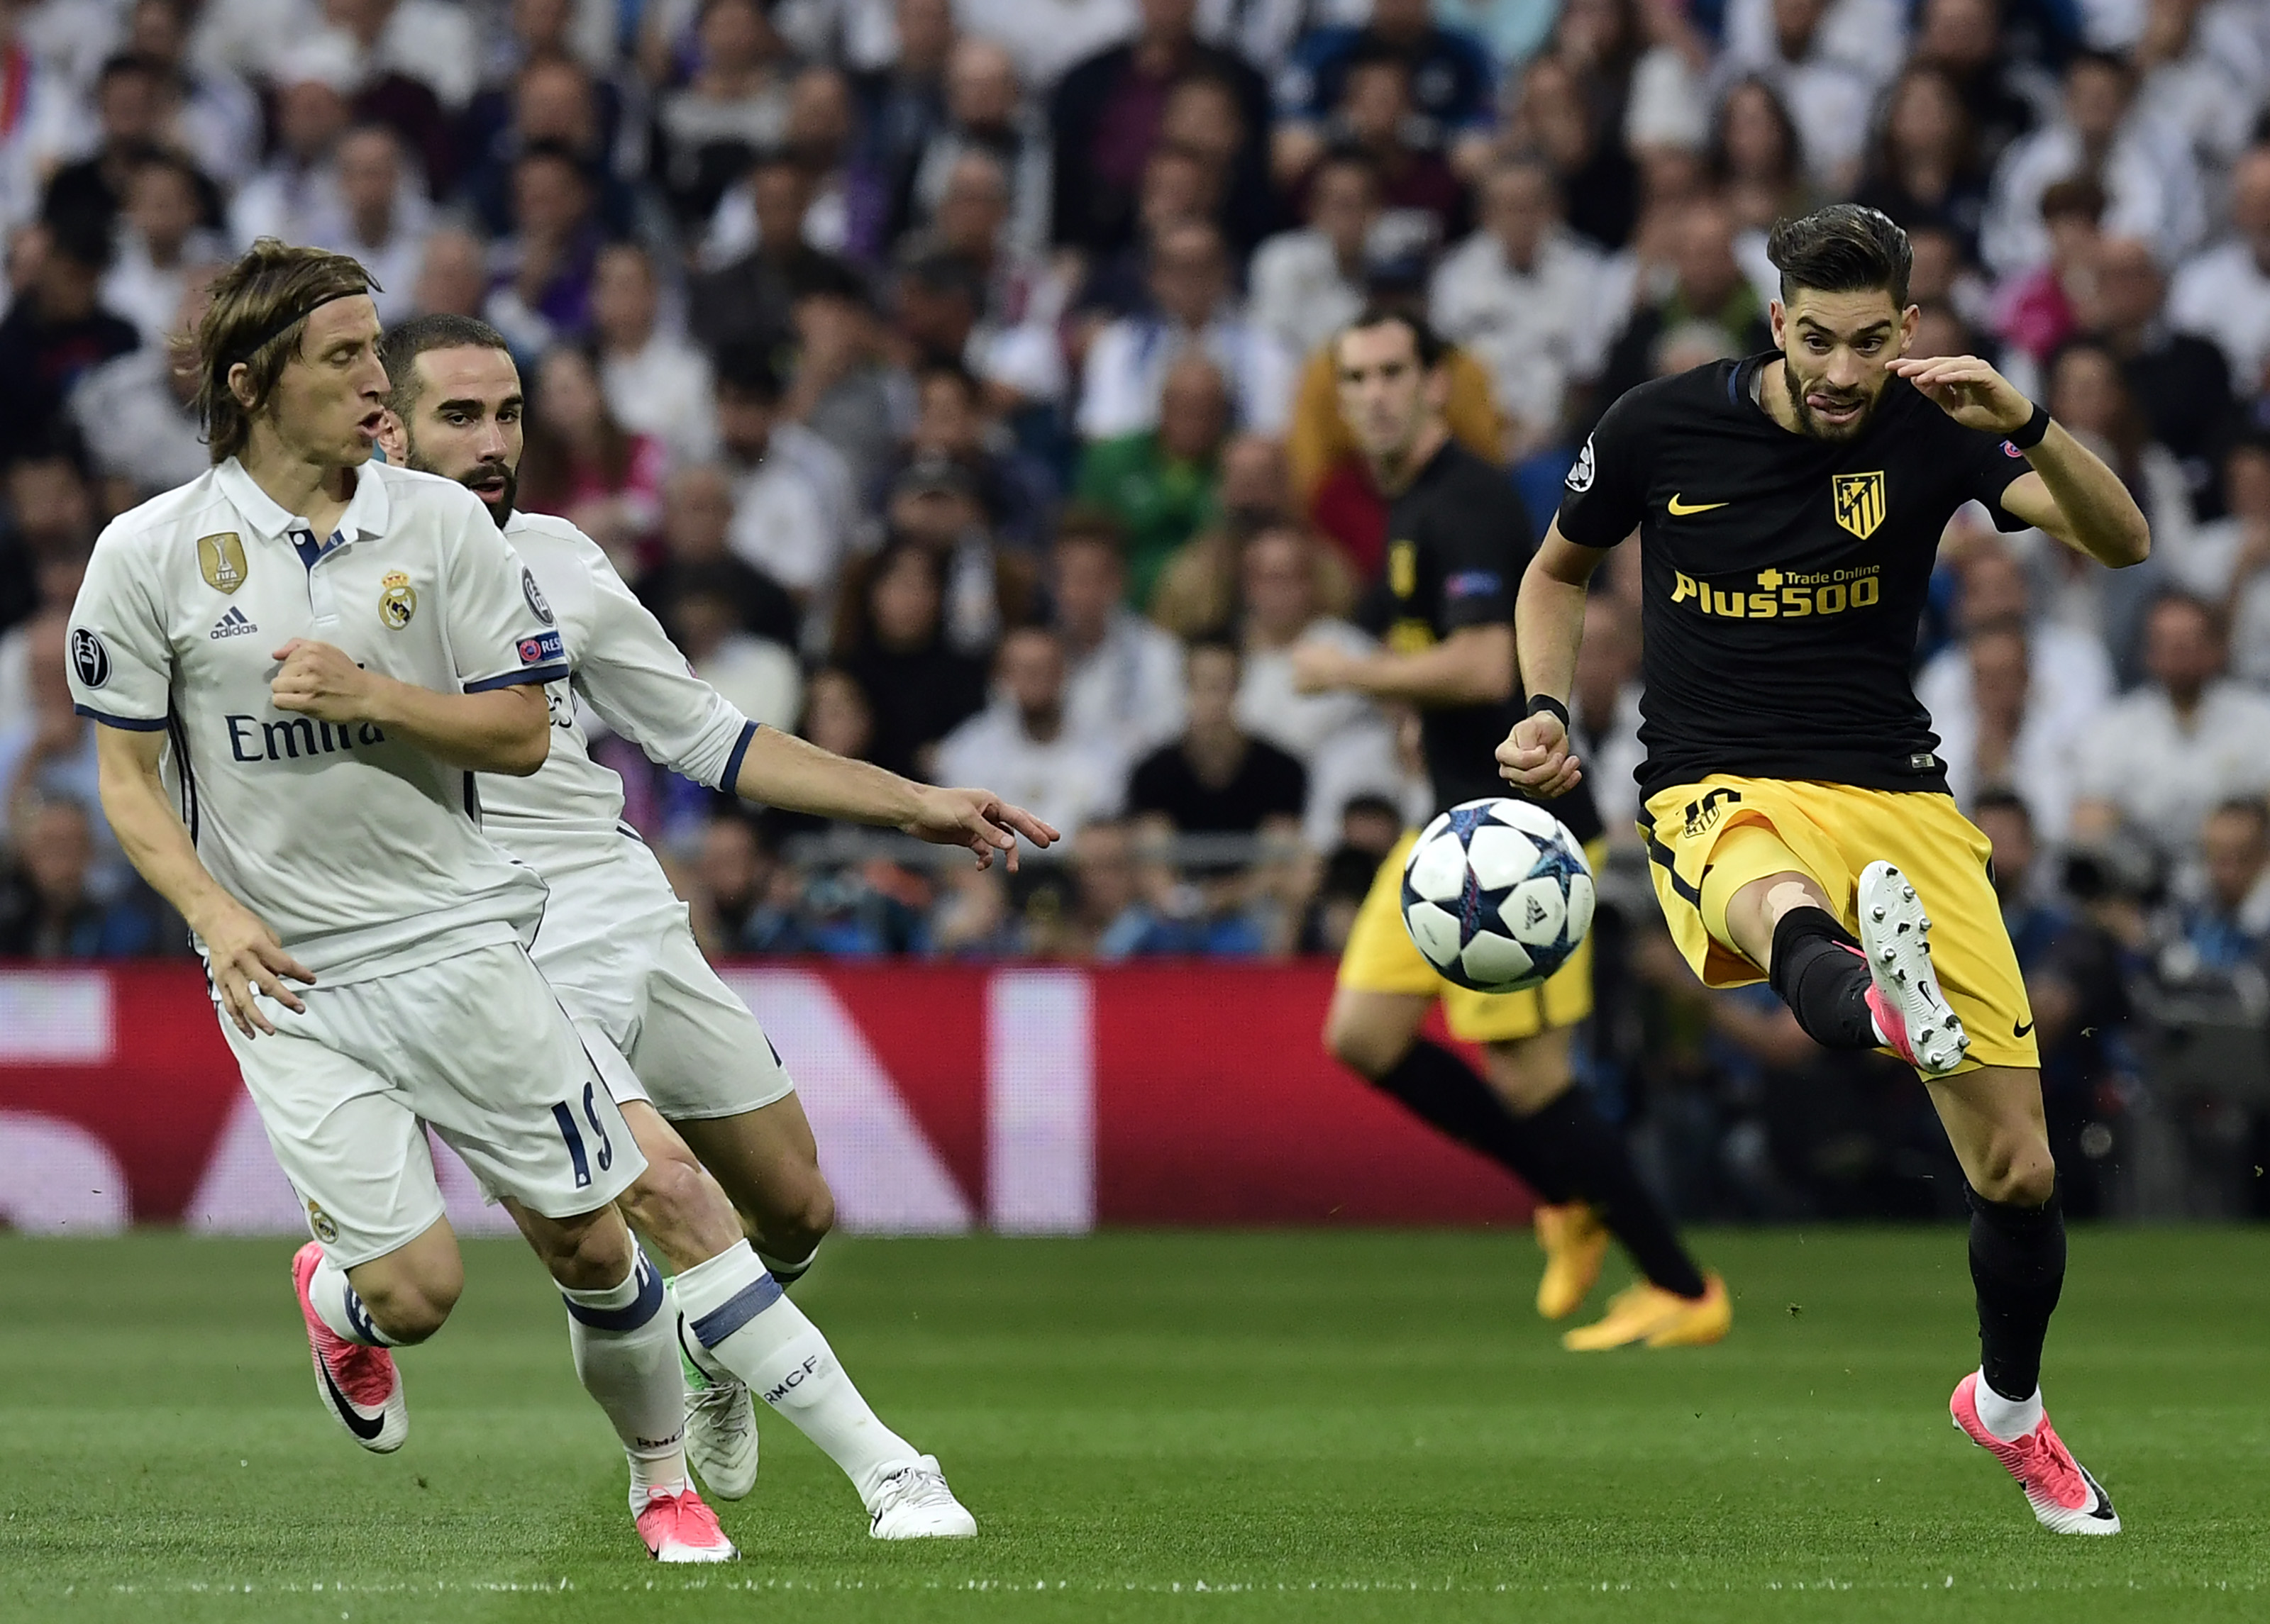 Atletico Madrid's Belgian midfielder Yannick Ferreira Carrasco (R) vies with Real Madrid's Croatian midfielder Luka Modric (L) and Real Madrid's defender Dani Carvajal during the UEFA Champions League semifinal first leg football match Real Madrid CF vs Club Atletico de Madrid at the Santiago Bernabeu stadium in Madrid, on May 2, 2017. / AFP PHOTO / JAVIER SORIANO